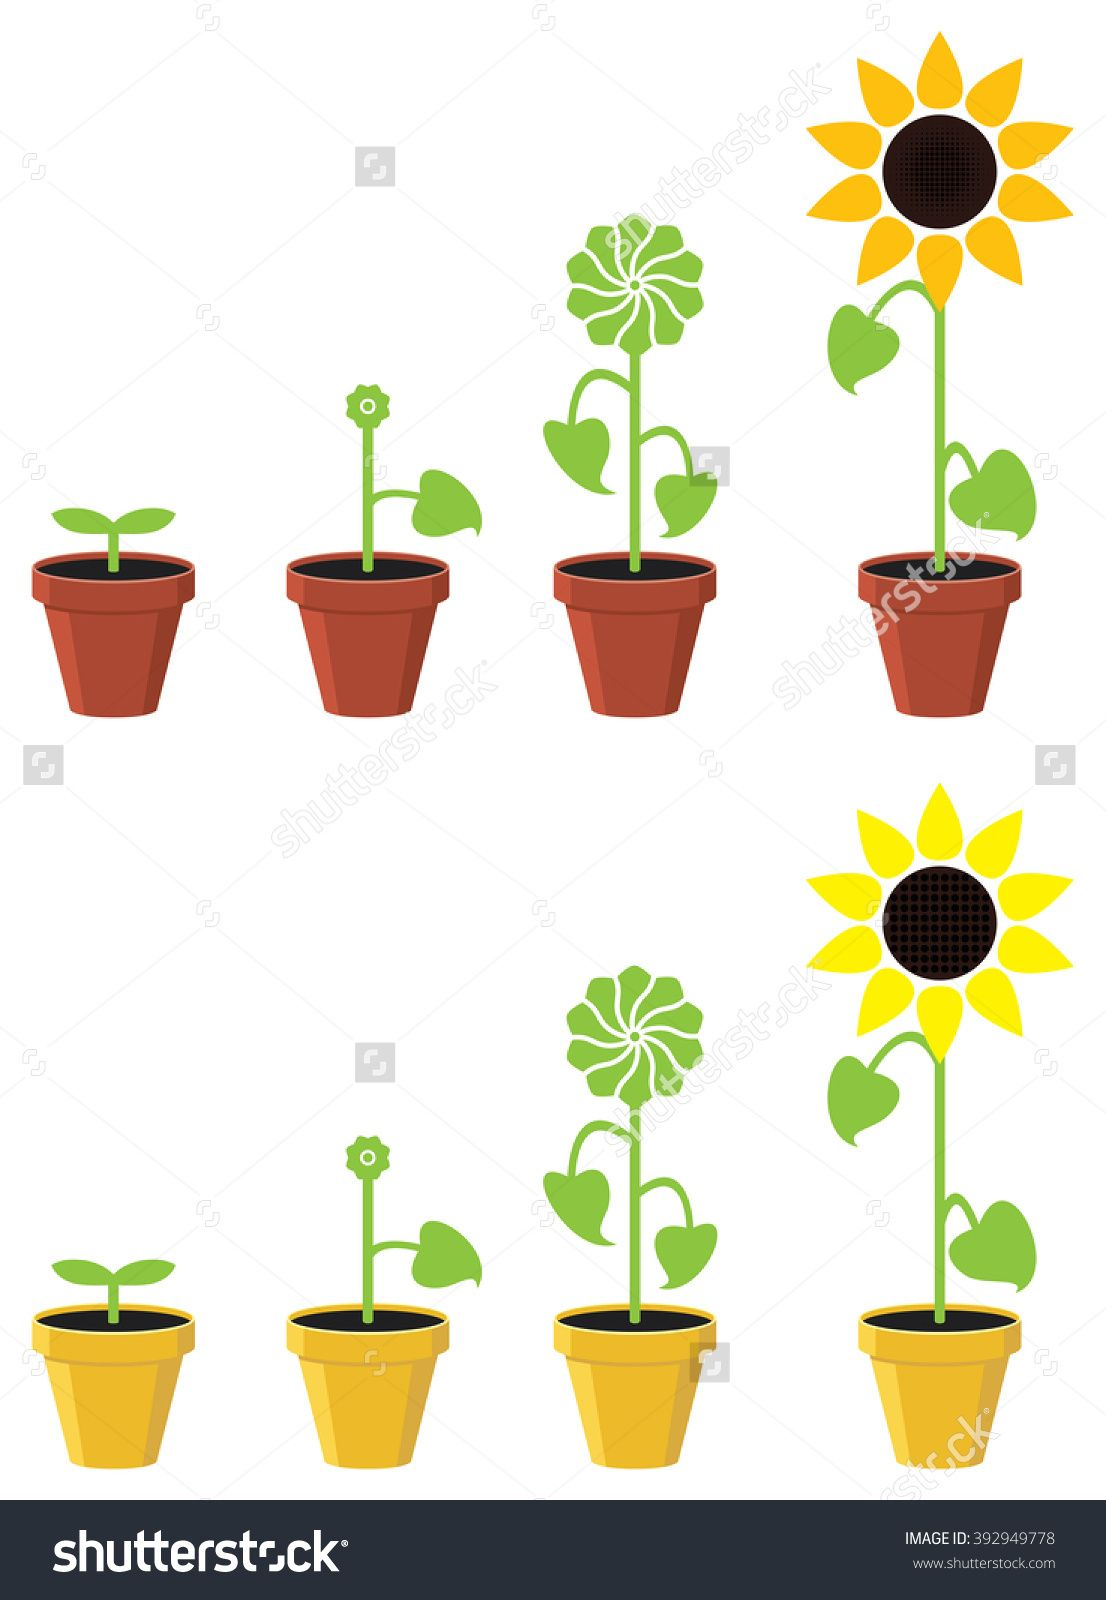 vector transparent download Growth stages concept . Vector sunflower plant